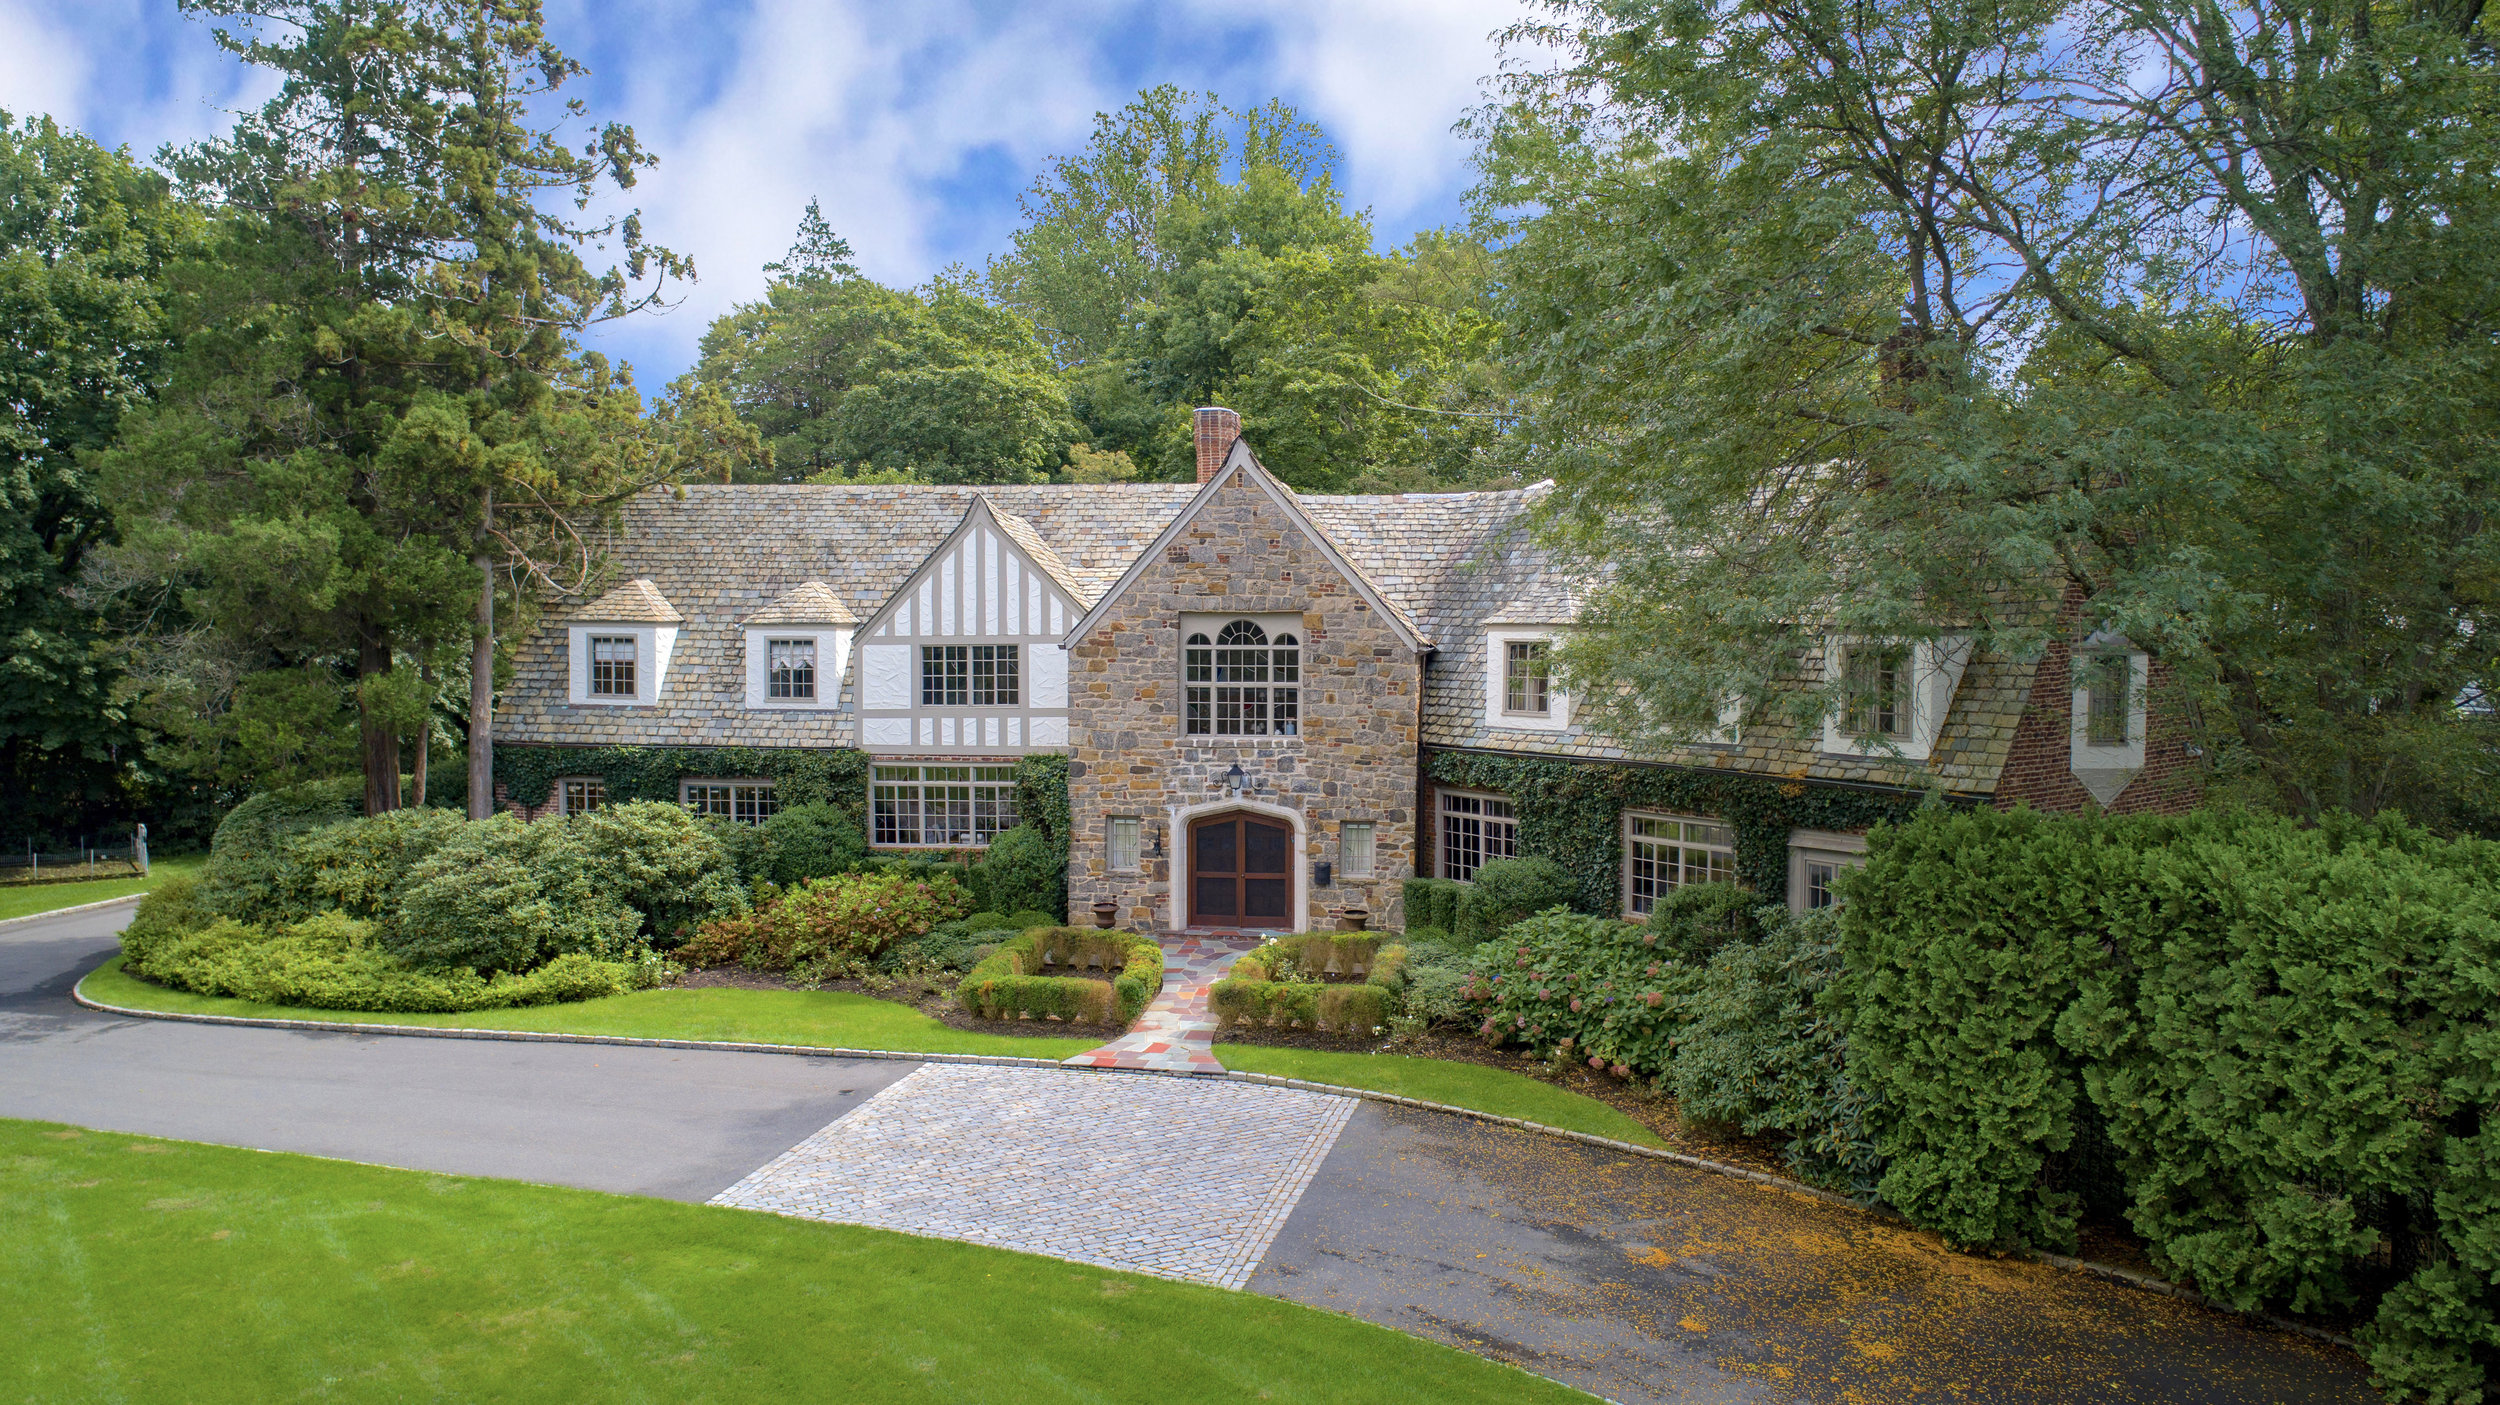 SOLD  64 Cushman Road Scarsdale, New York Majestic Tudor Estate in Scarsdale's Murray Hill Neighborhood. Represented the Seller as the Listing Agent  (2019)